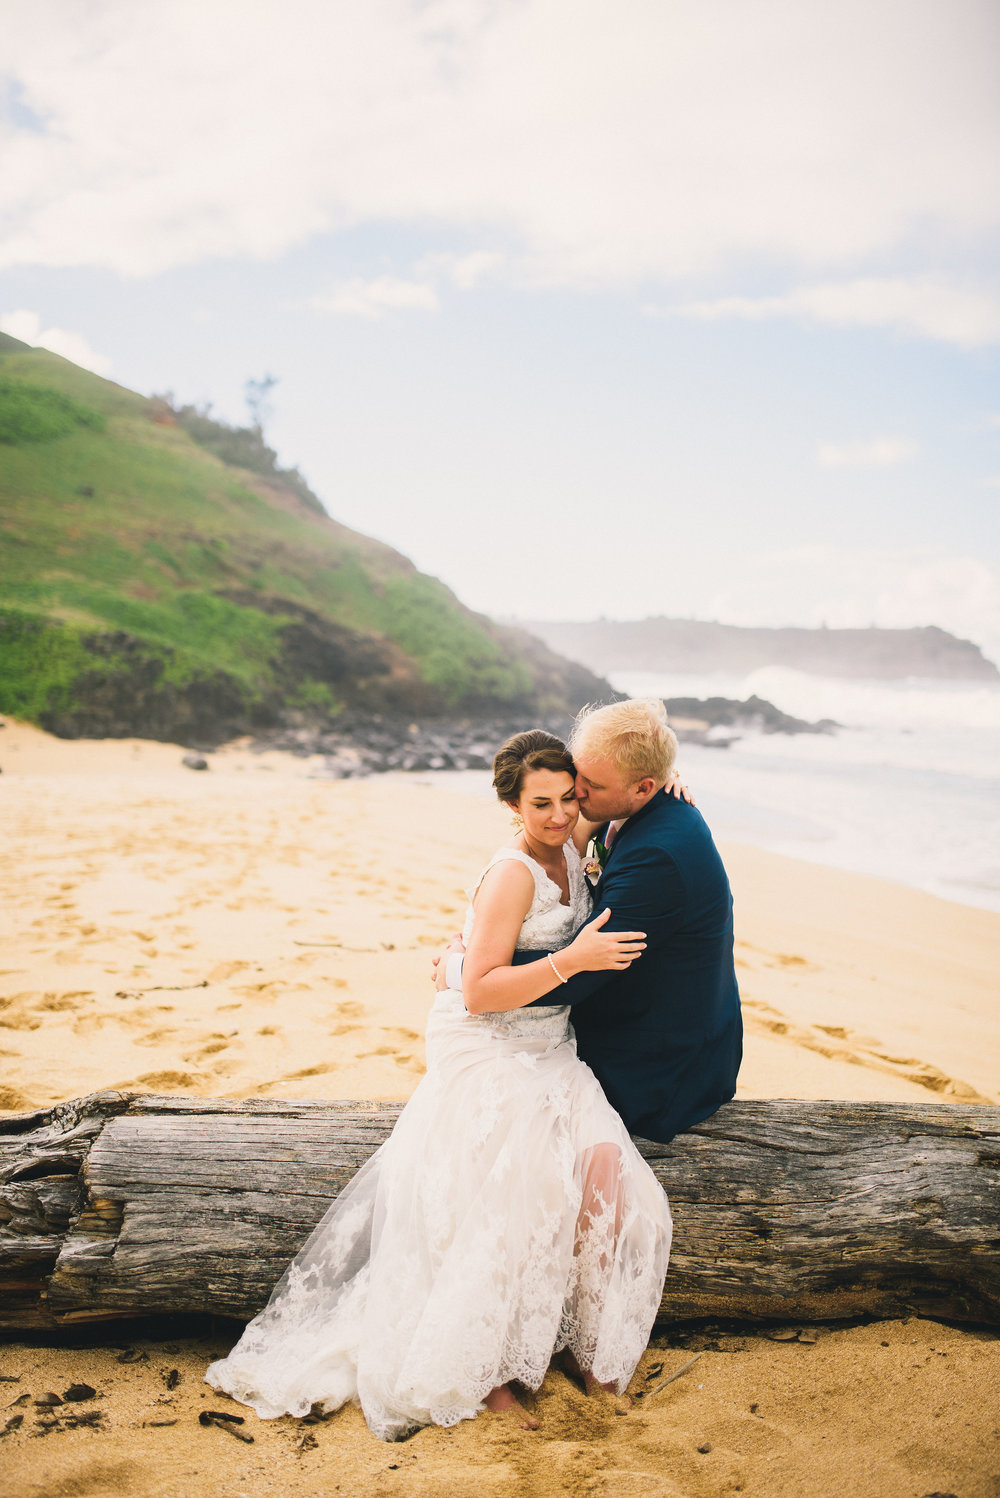 Elopement on the Beach